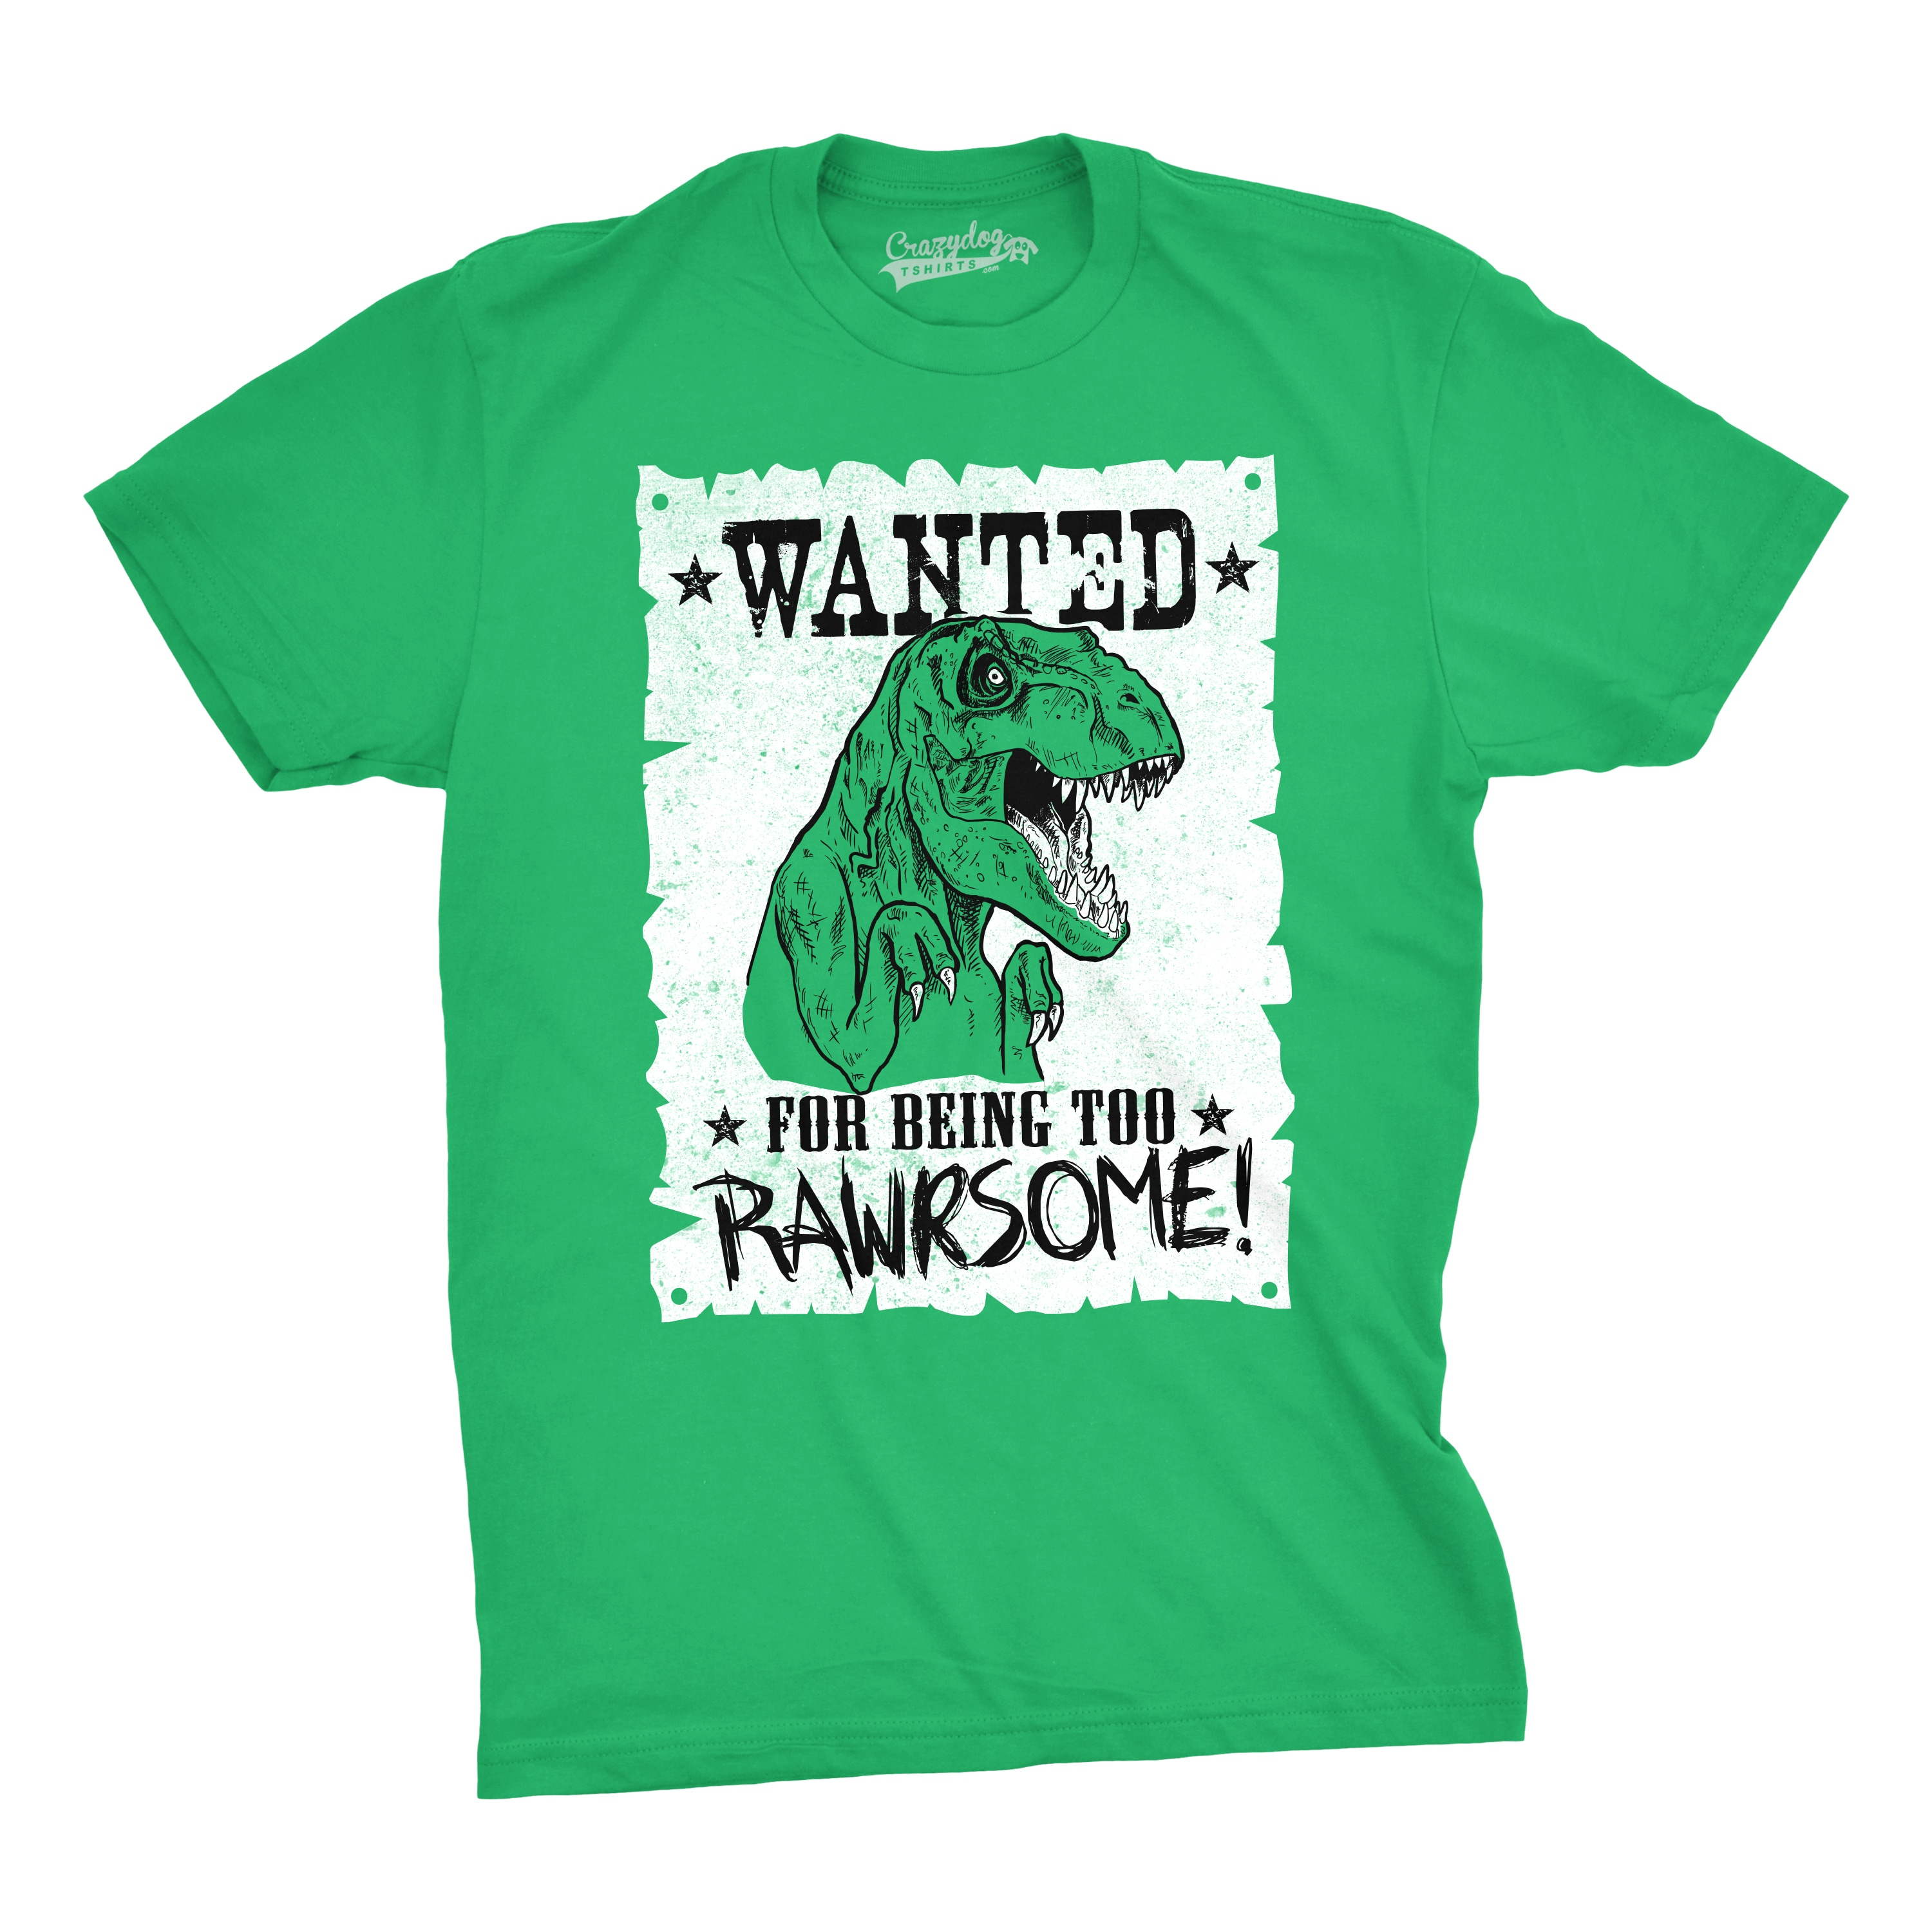 29032b8e4 Shop Mens Wanted For Being Too Rawrsome Funny T-Rex Dinosaur T shirt - Free  Shipping On Orders Over $45 - Overstock - 16181587